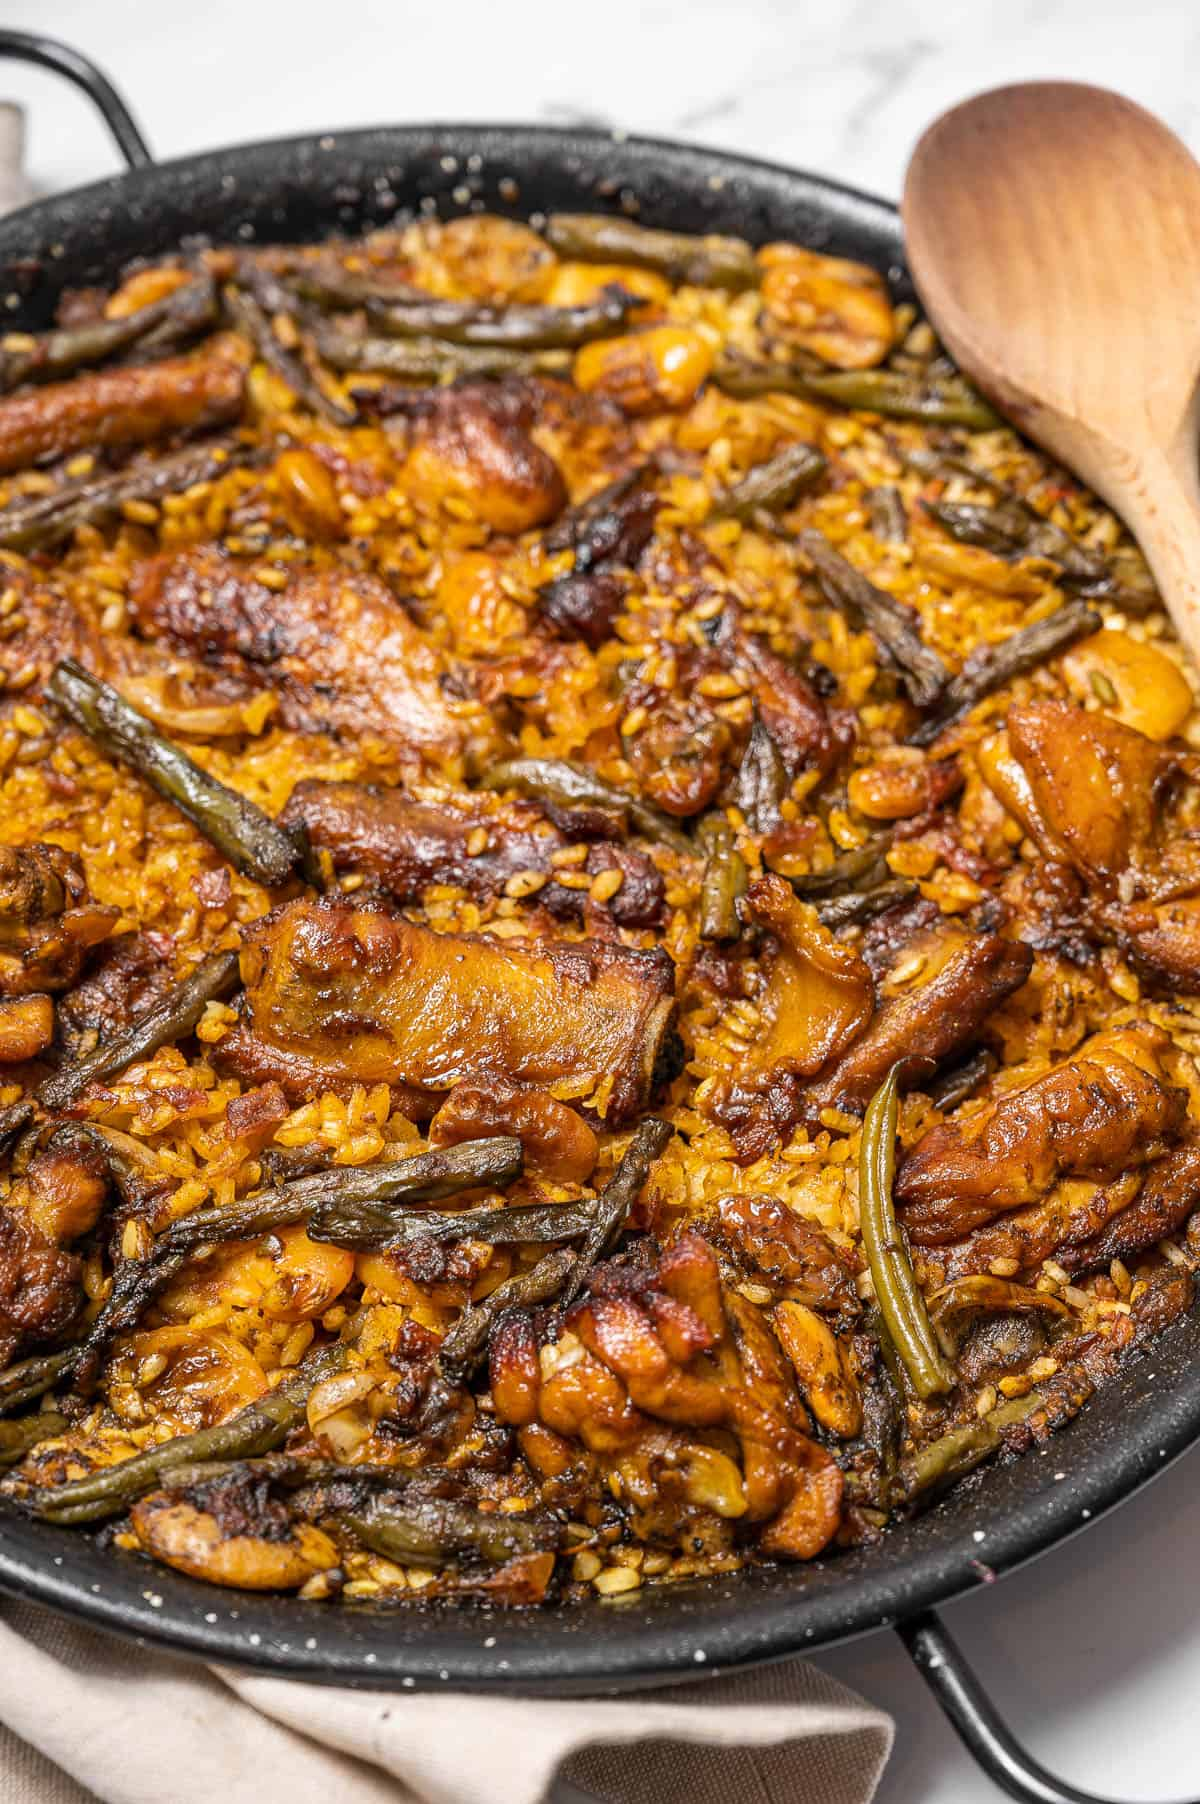 Paella Valenciana with chicken, ribs, and green beans. A traditional Spanish meat paella with a wooden spoon resting on top.